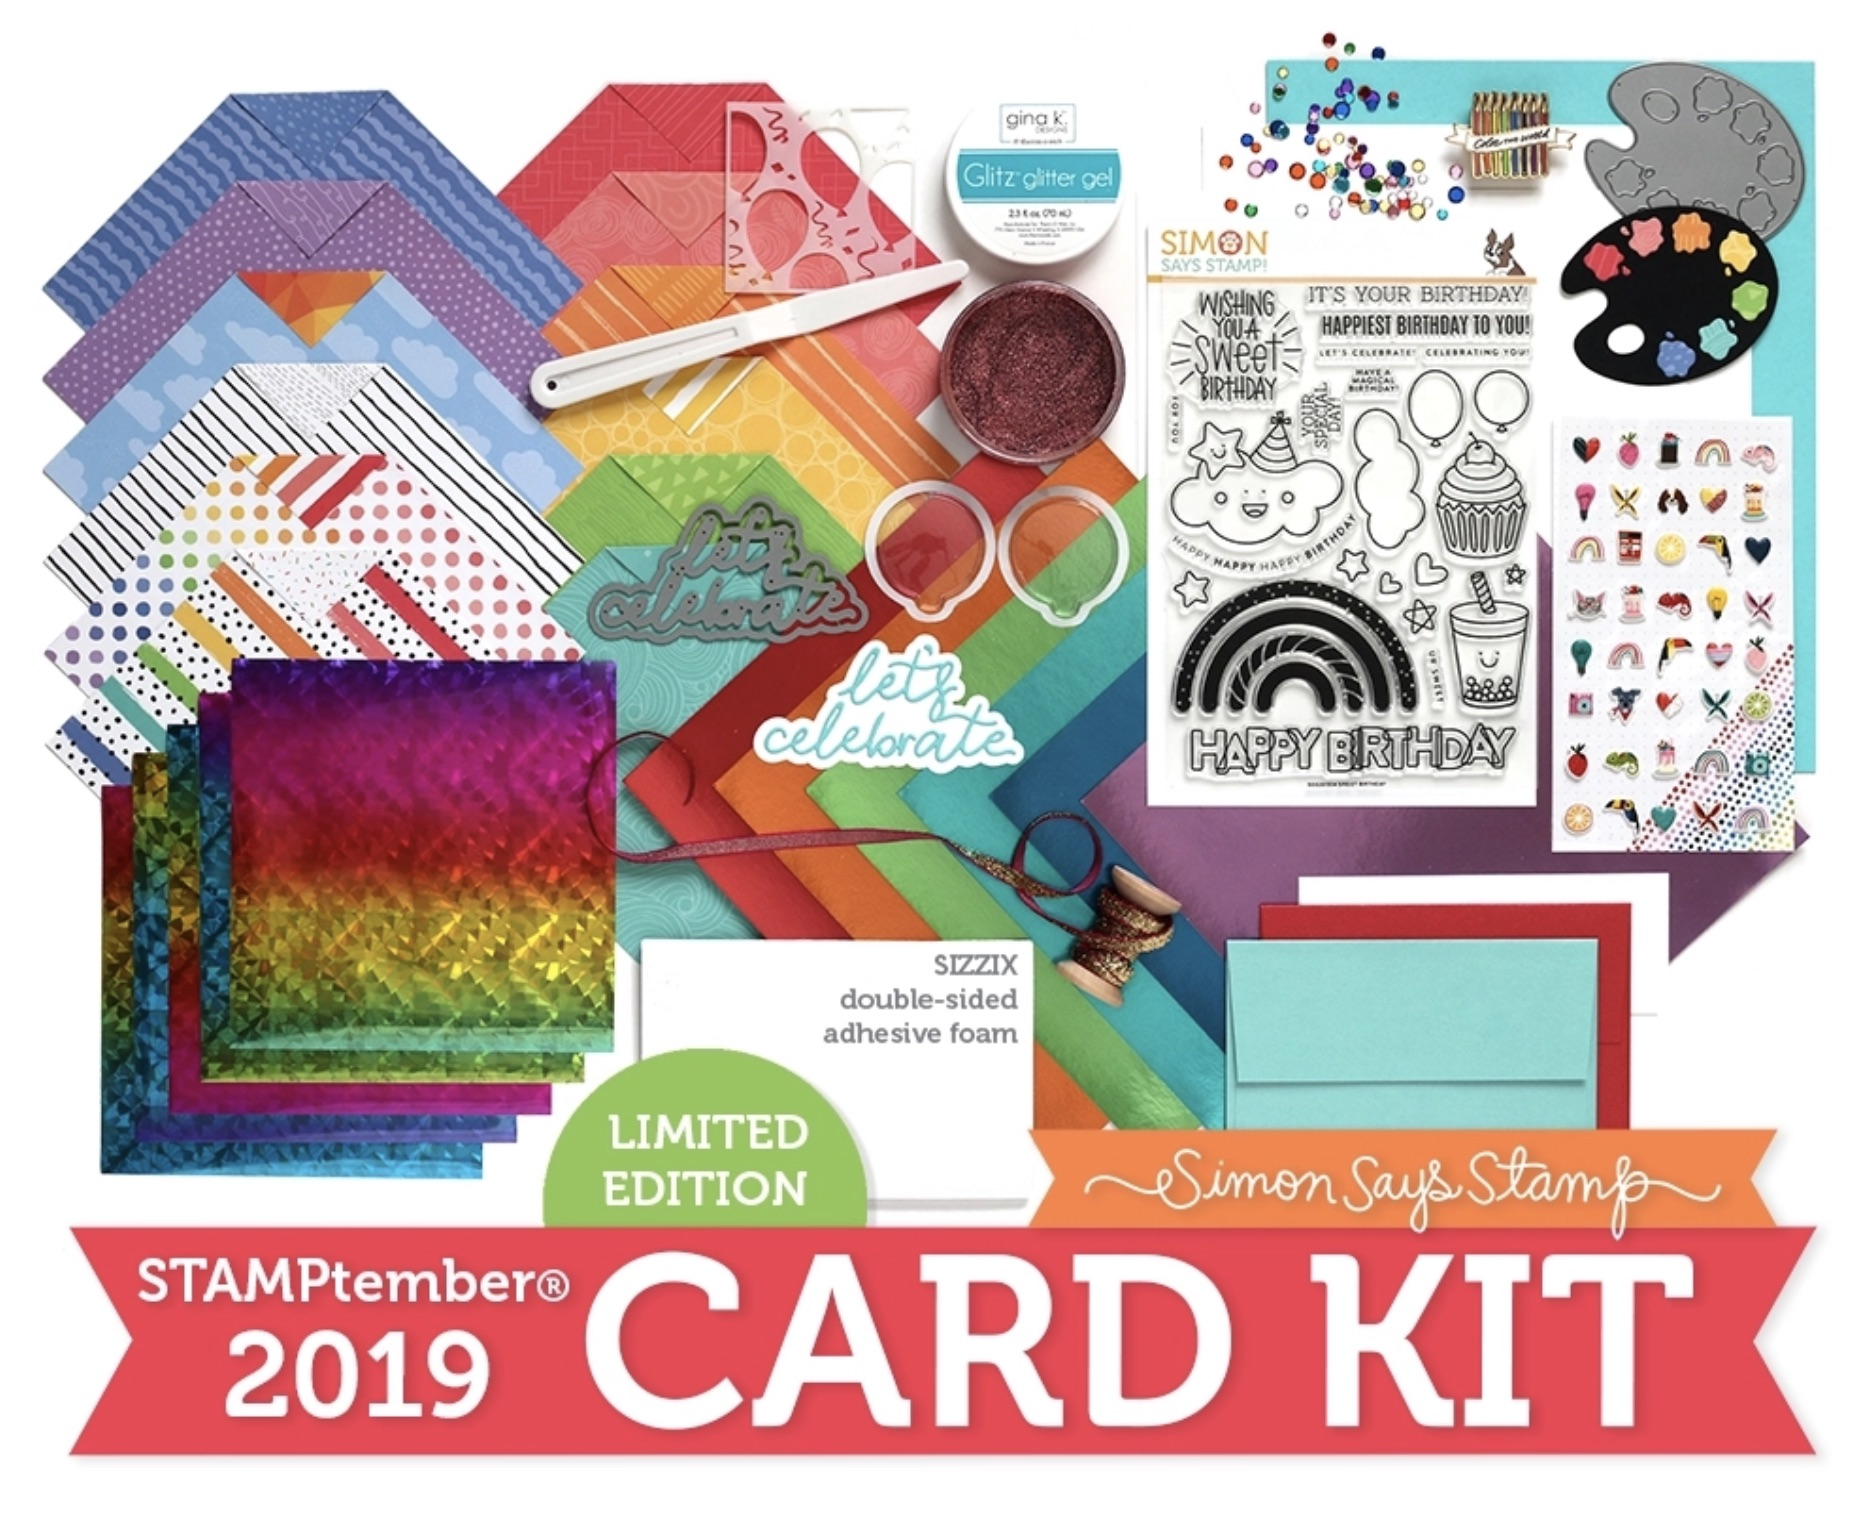 Simon's STAMPtember® Limited Edition Kit!